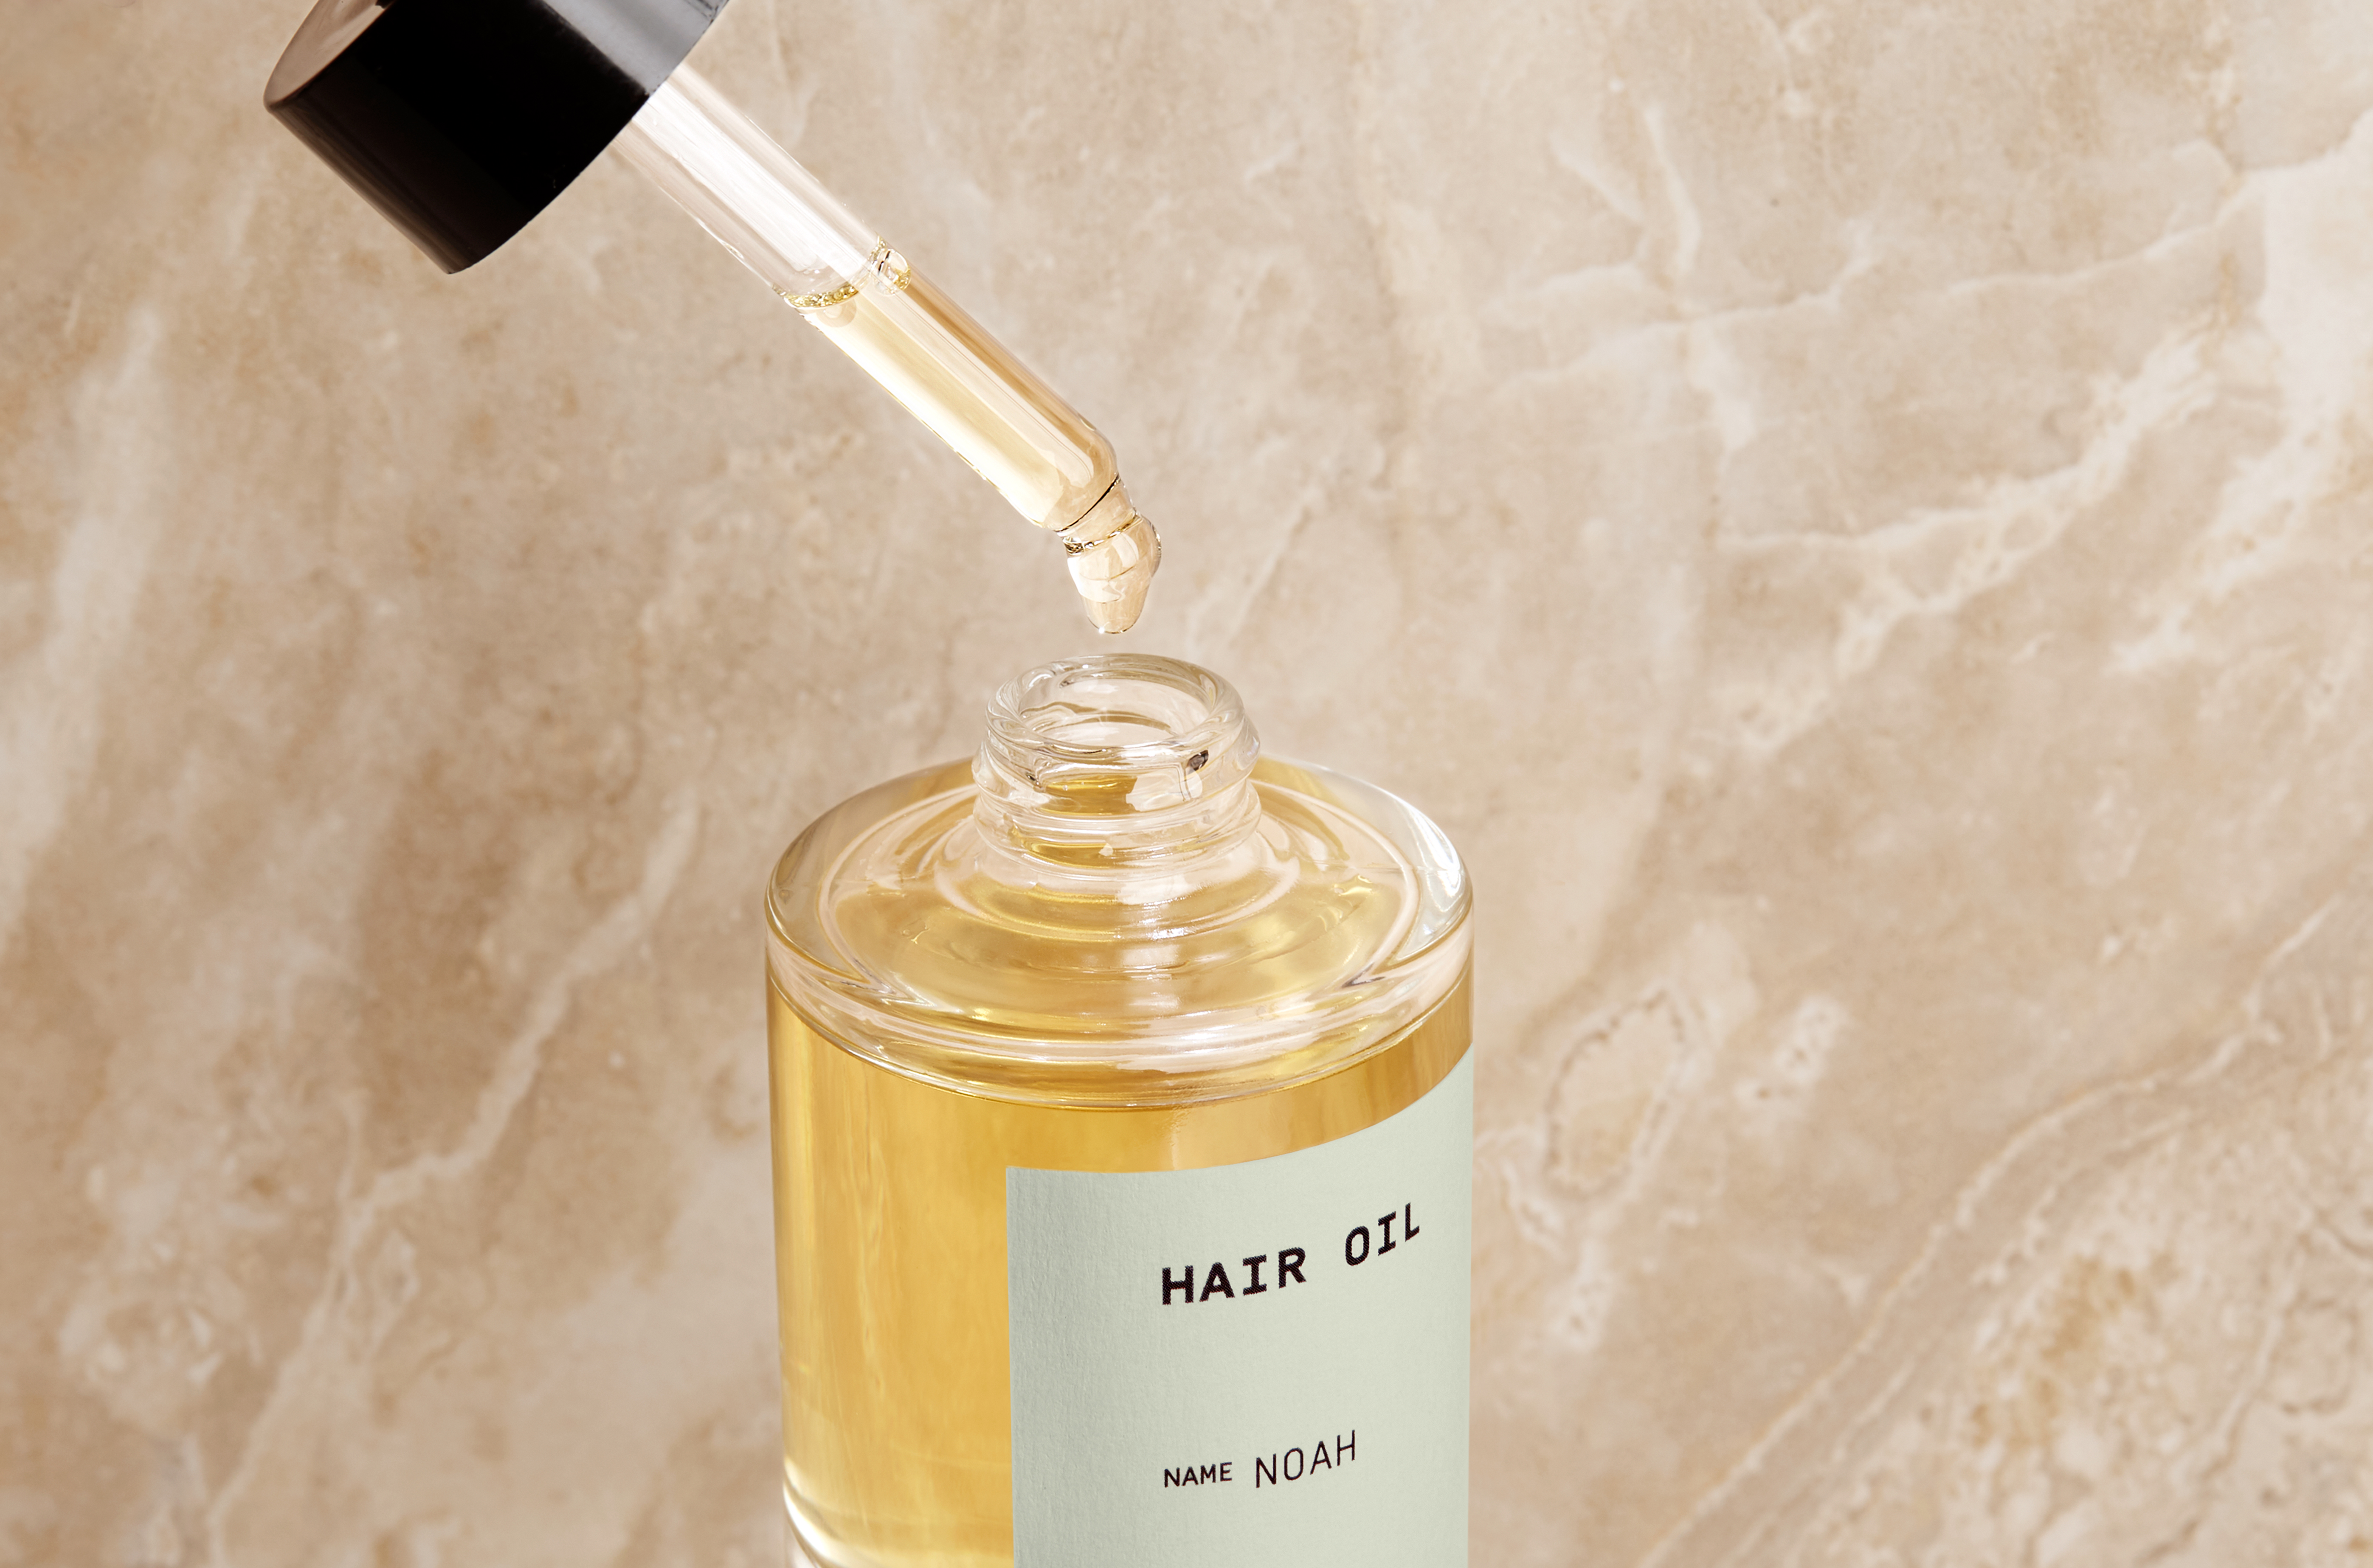 Custom hair oil in front of a marbled blush background